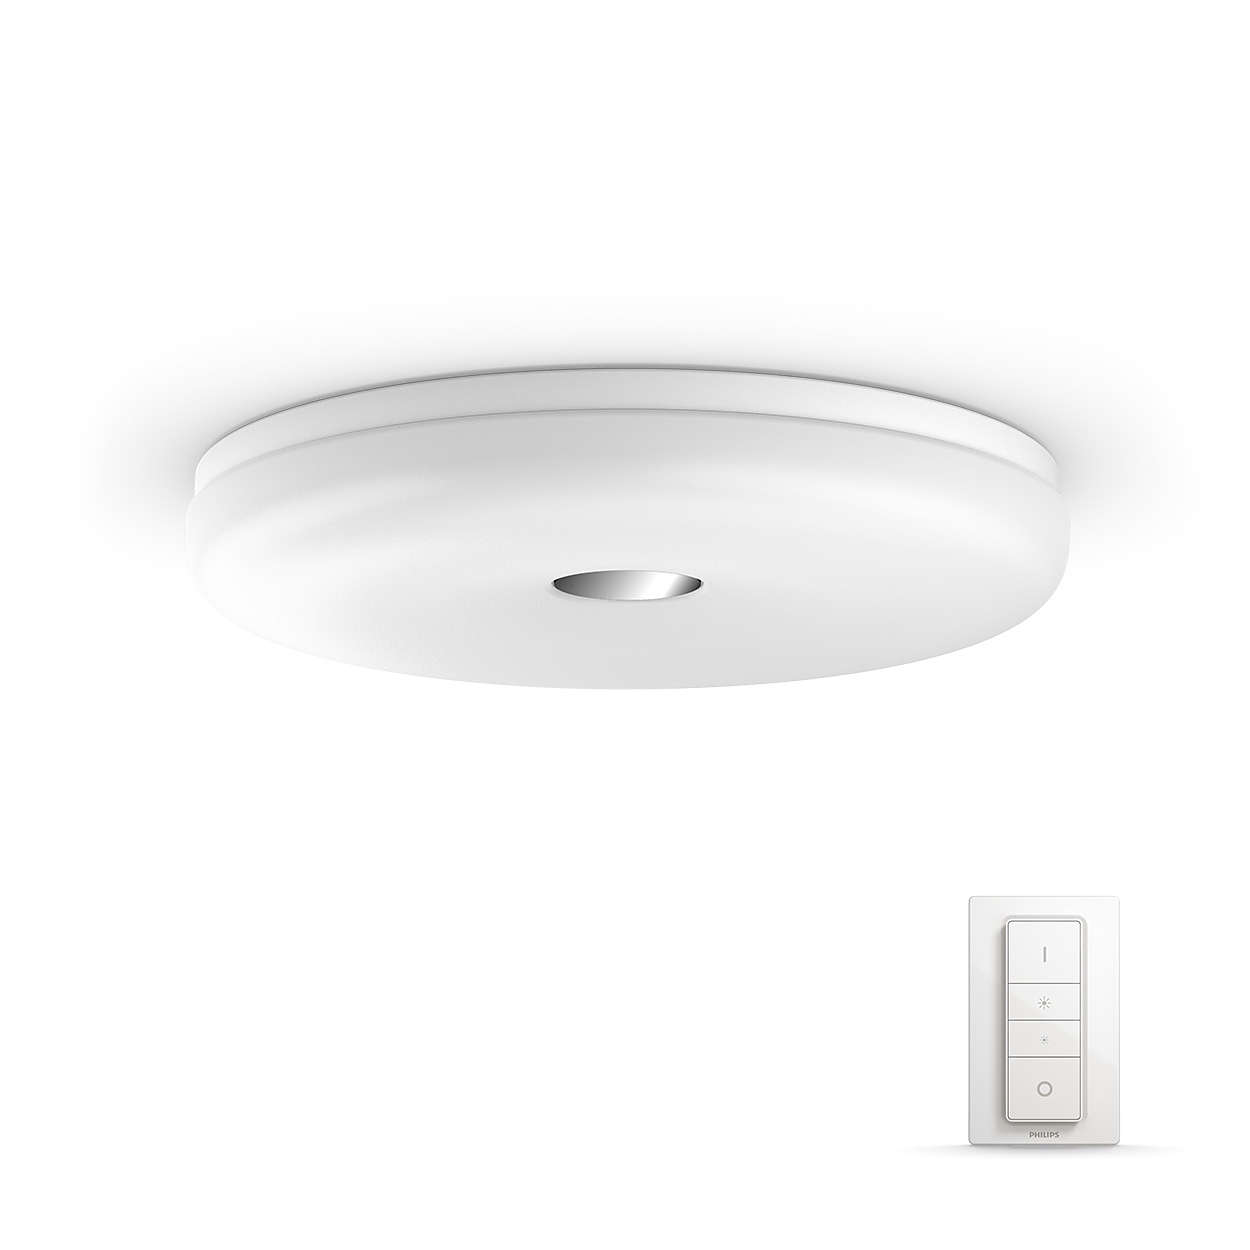 Philips Hue Ambiance Whice Struana